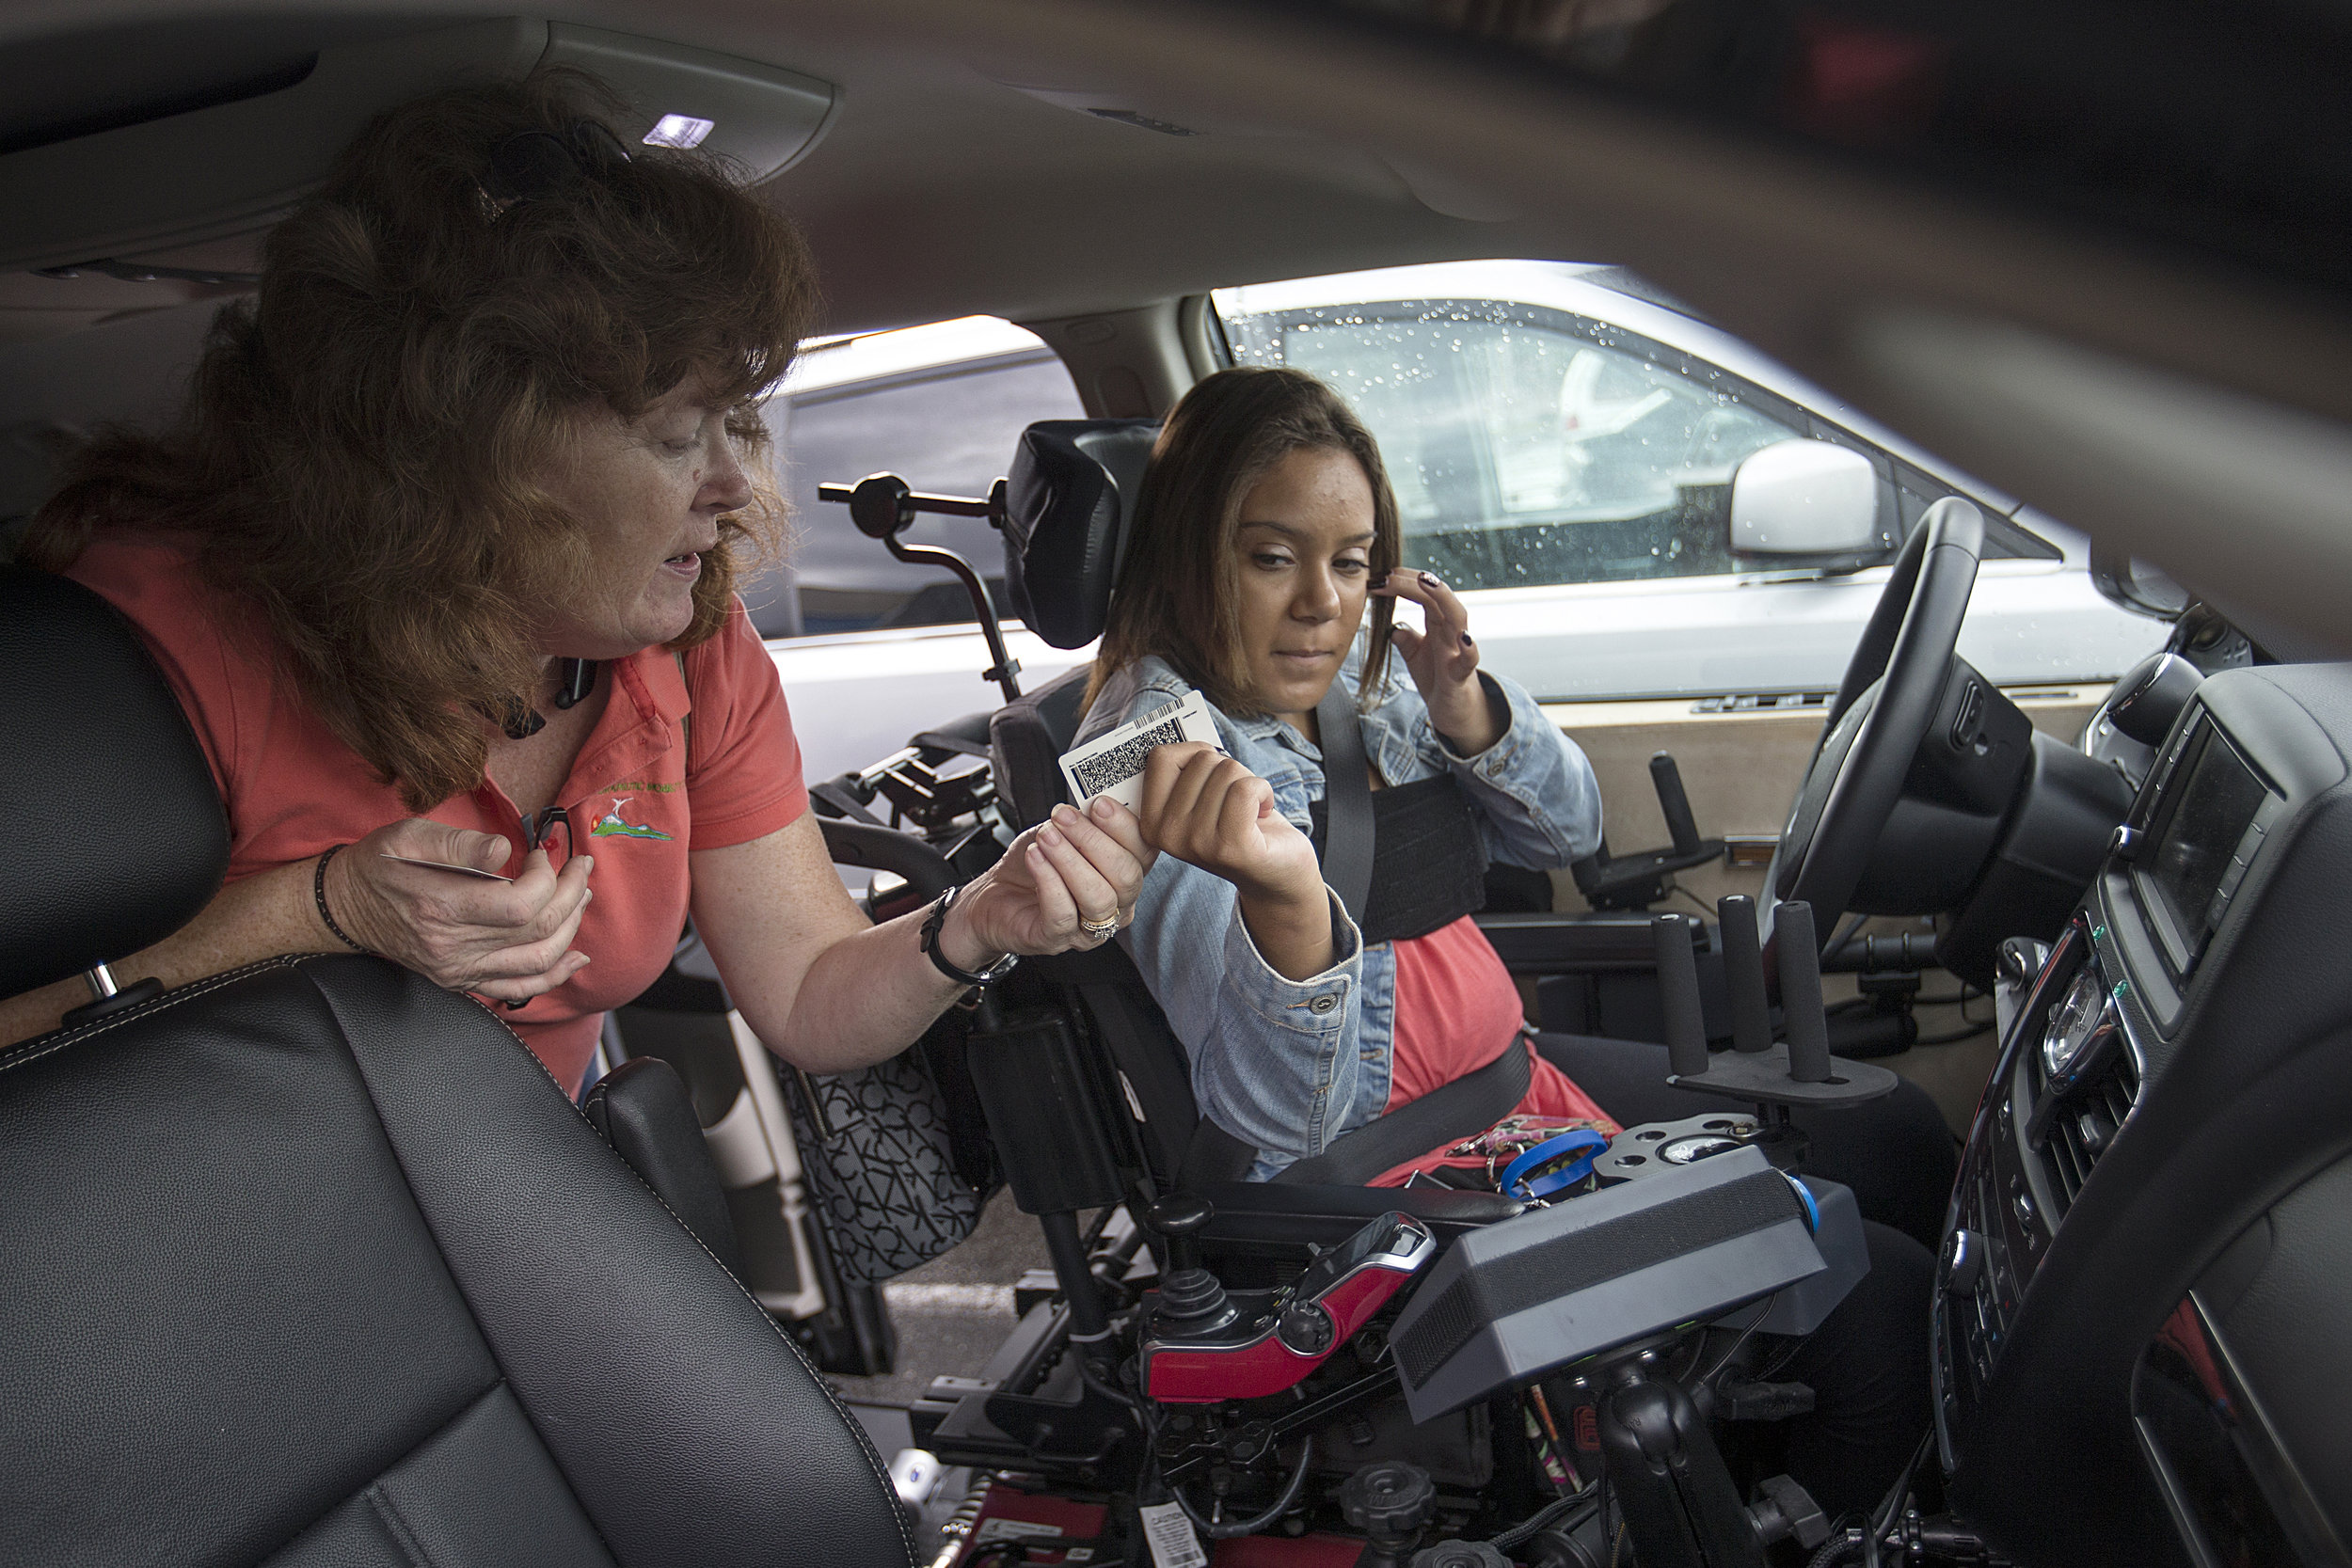 Eva Richardville, an instructor from Therapeutic Mobility Services, prepares Macy Huff for her driving test at the Brownsburg Bureau of Motor Vehicles, Sept. 28, 2016. Huff passed her test, and will have a Ford Explorer adapted for accessibility in the coming months. After learning about her journey earlier this year, an anonymous donor offered to purchase an adapted vehicle for Huff.